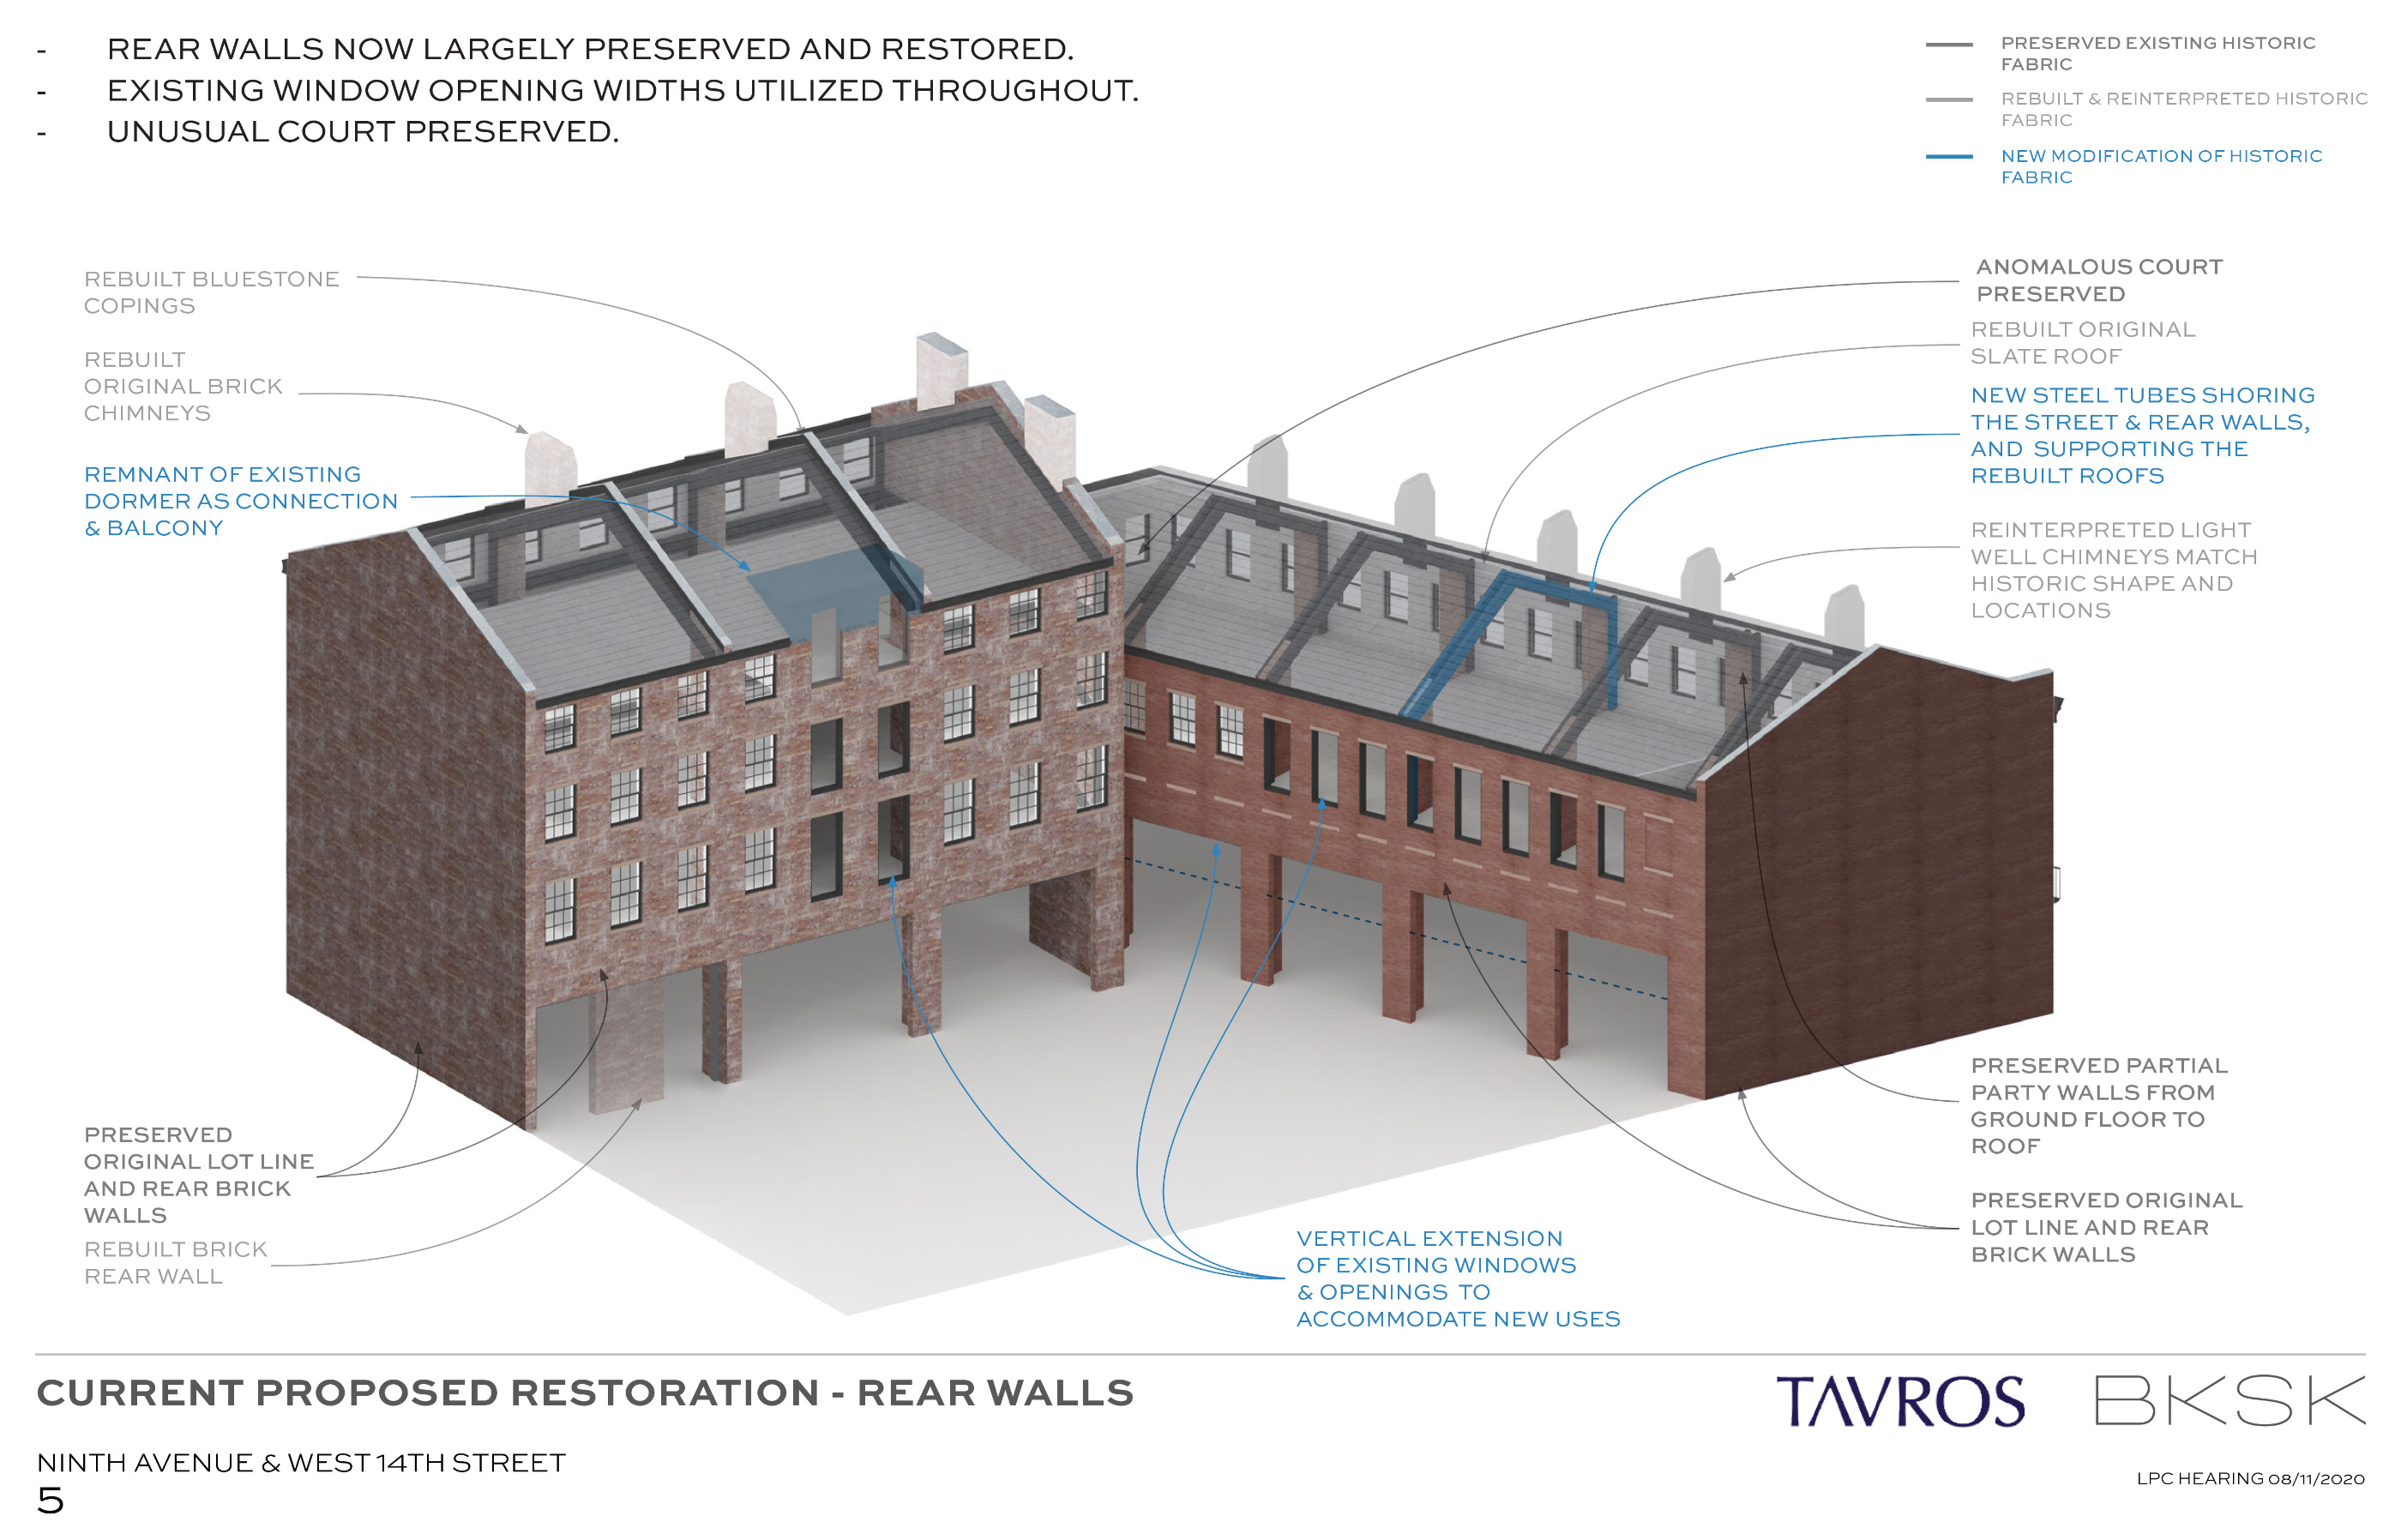 A diagram detailing rear wall restorations in a section of townhouses